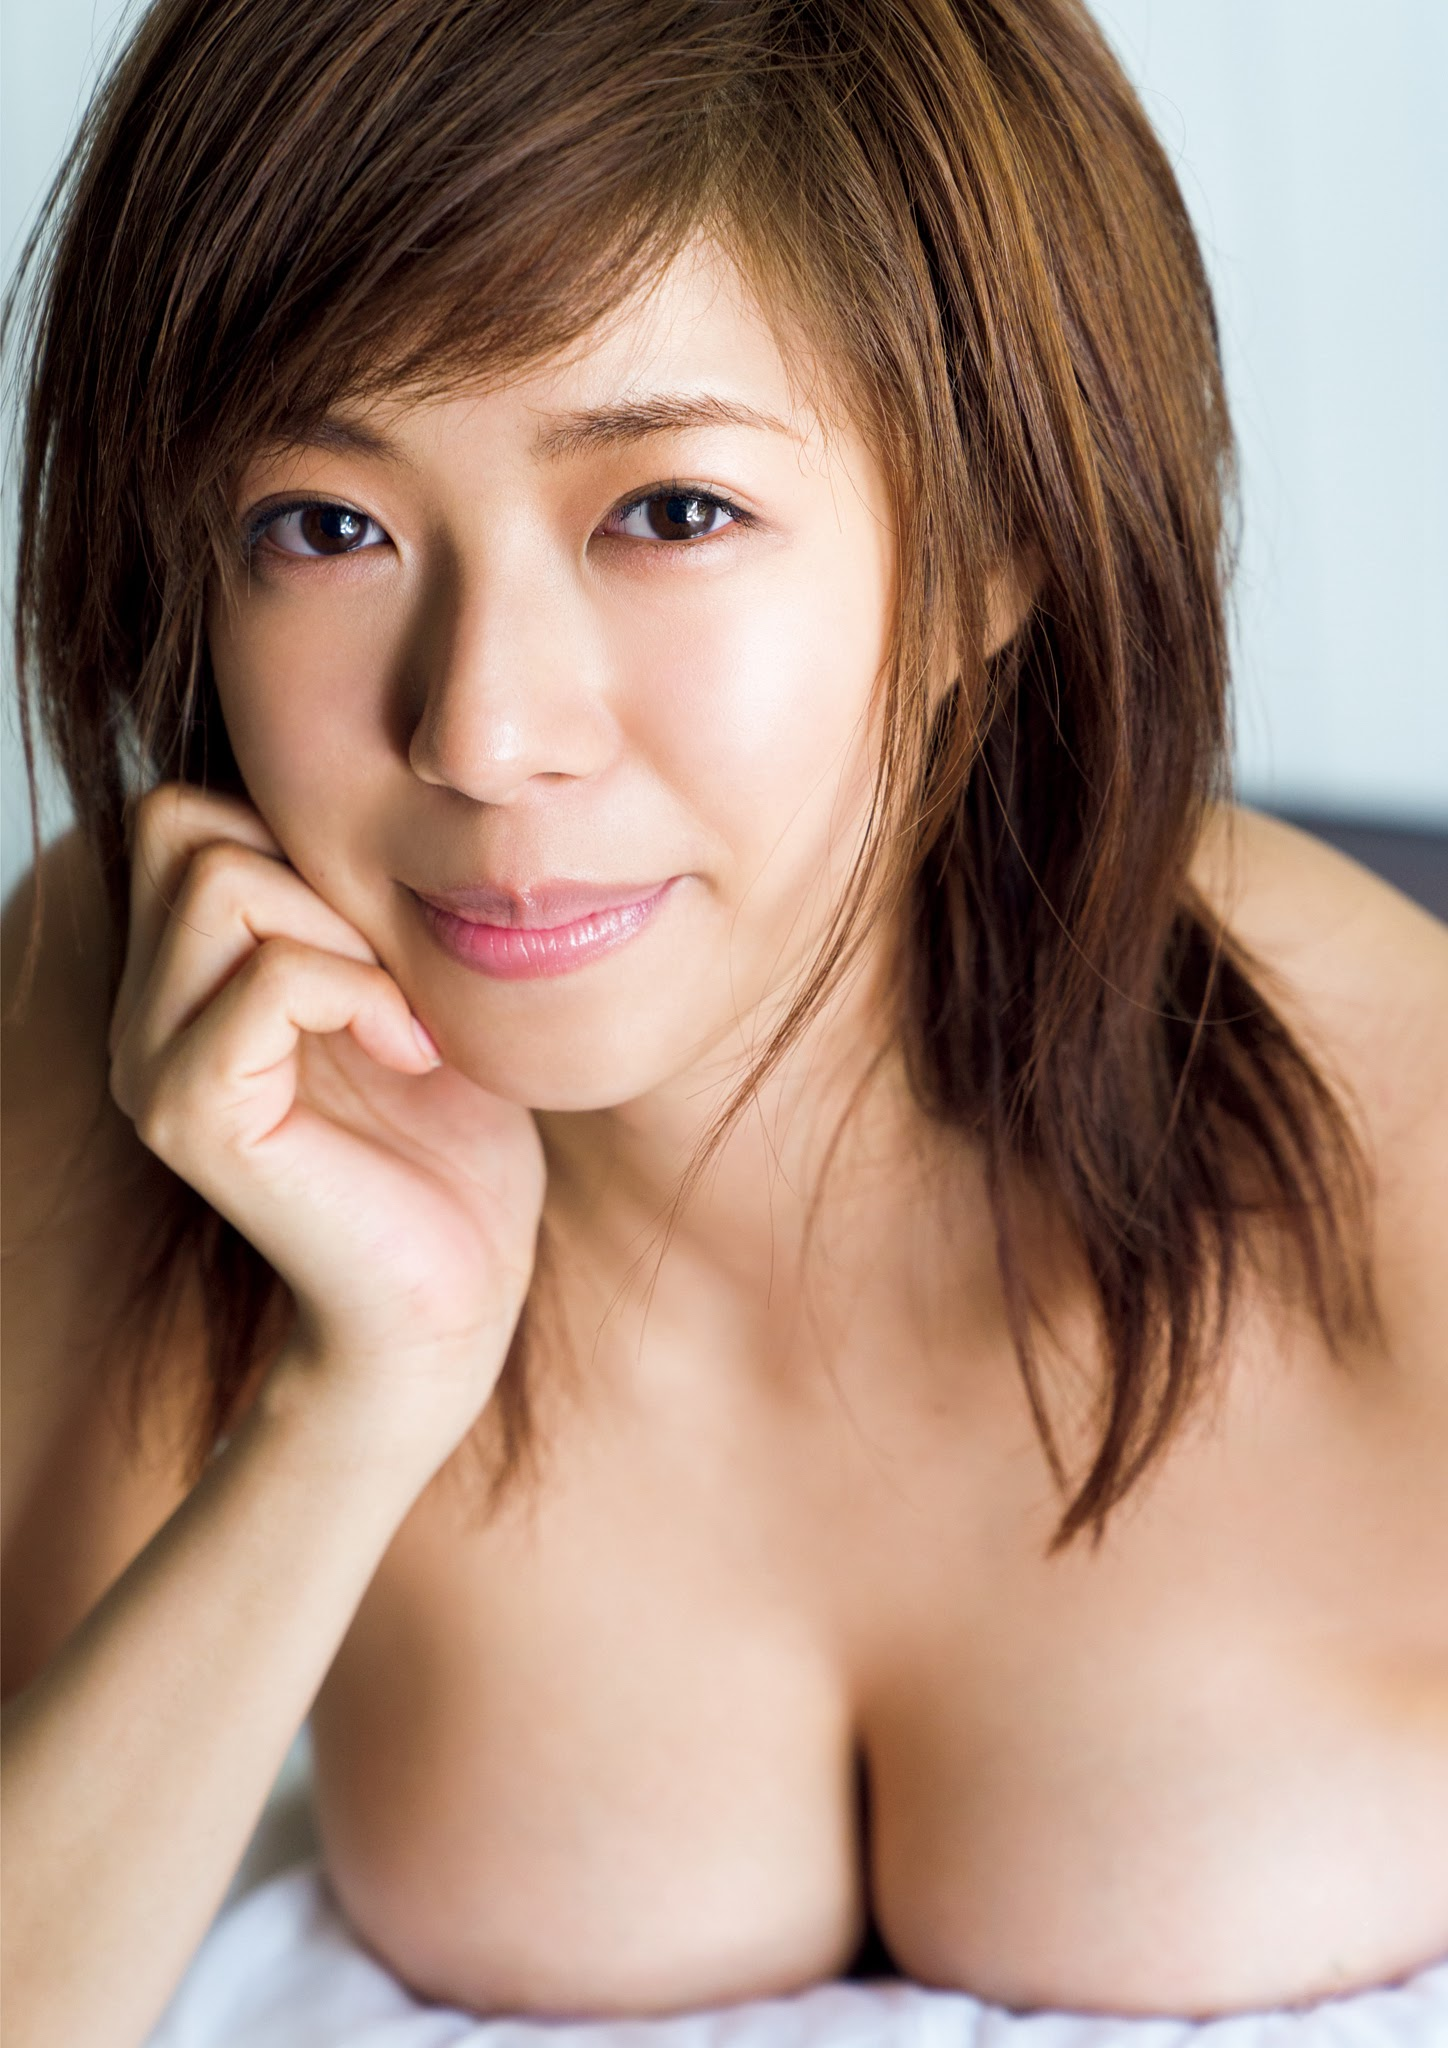 Super body of H cup Minami Wachi 2020 that exposes body and mind in tropical Thailand106